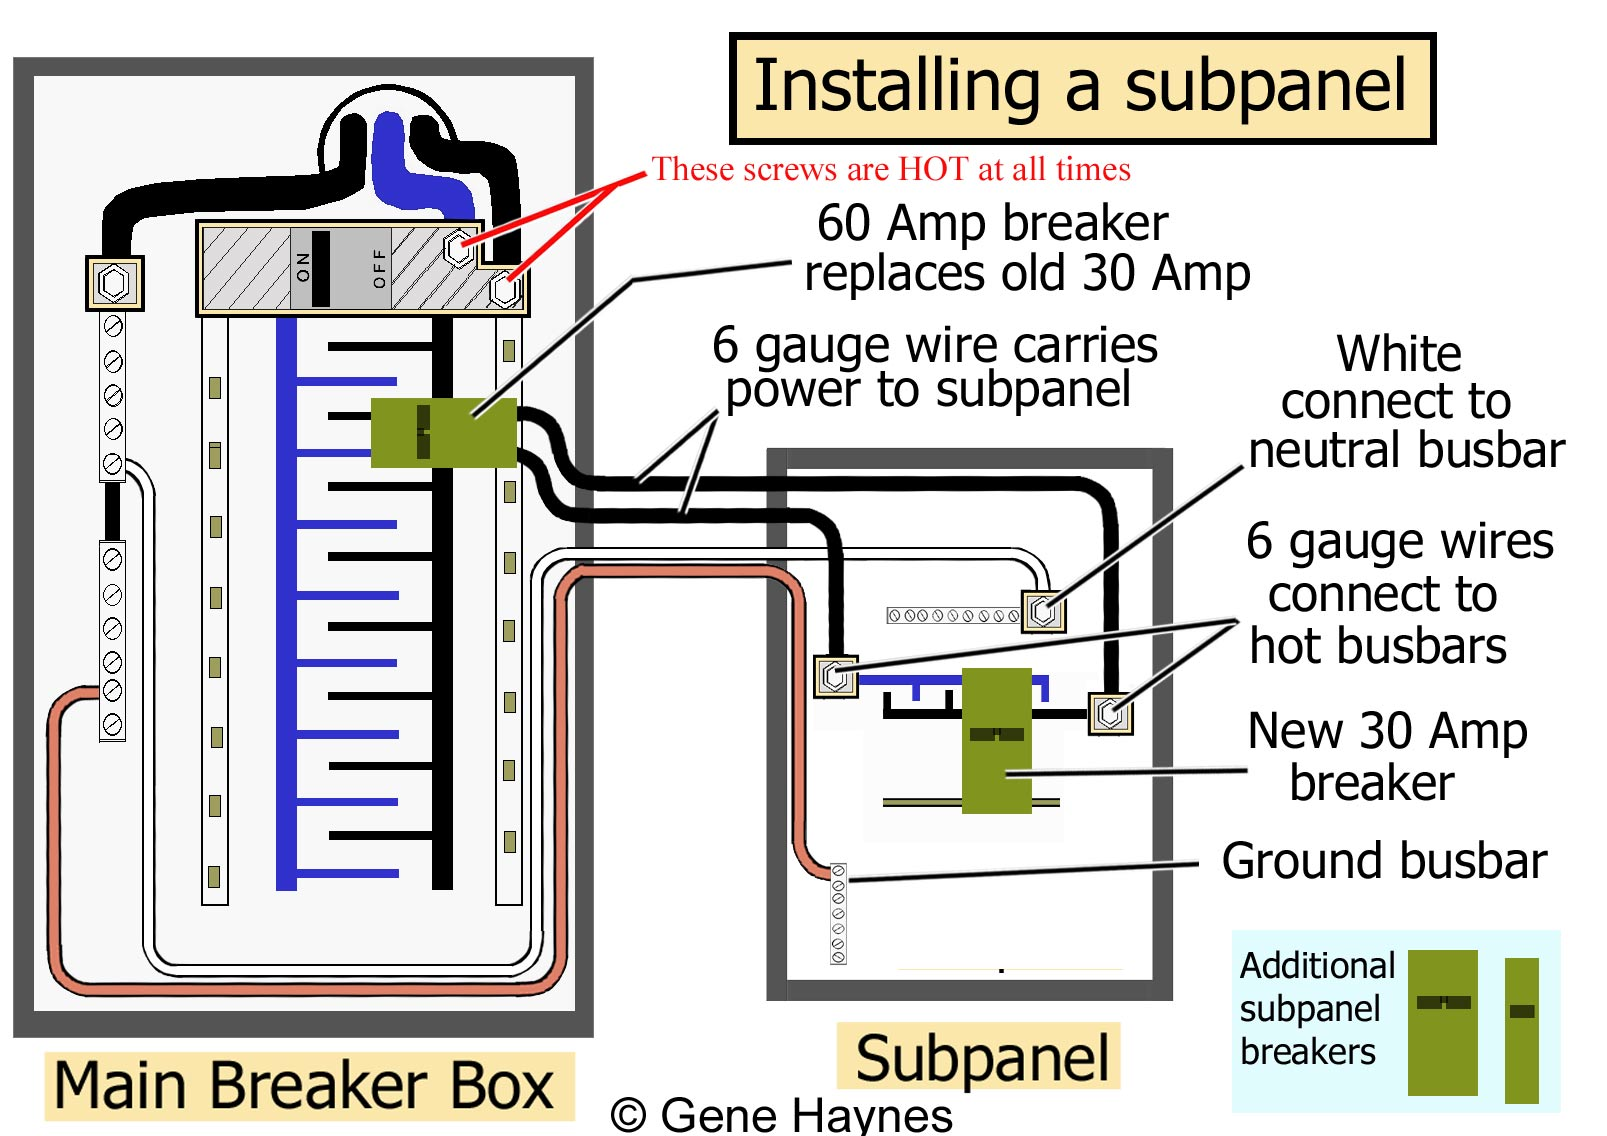 how to install a subpanel how to install main lug Breaker Panel Wiring Diagram 1) 60 150 amp breaker replaces any 240 breaker in main box near top of box breaker panel wiring diagram